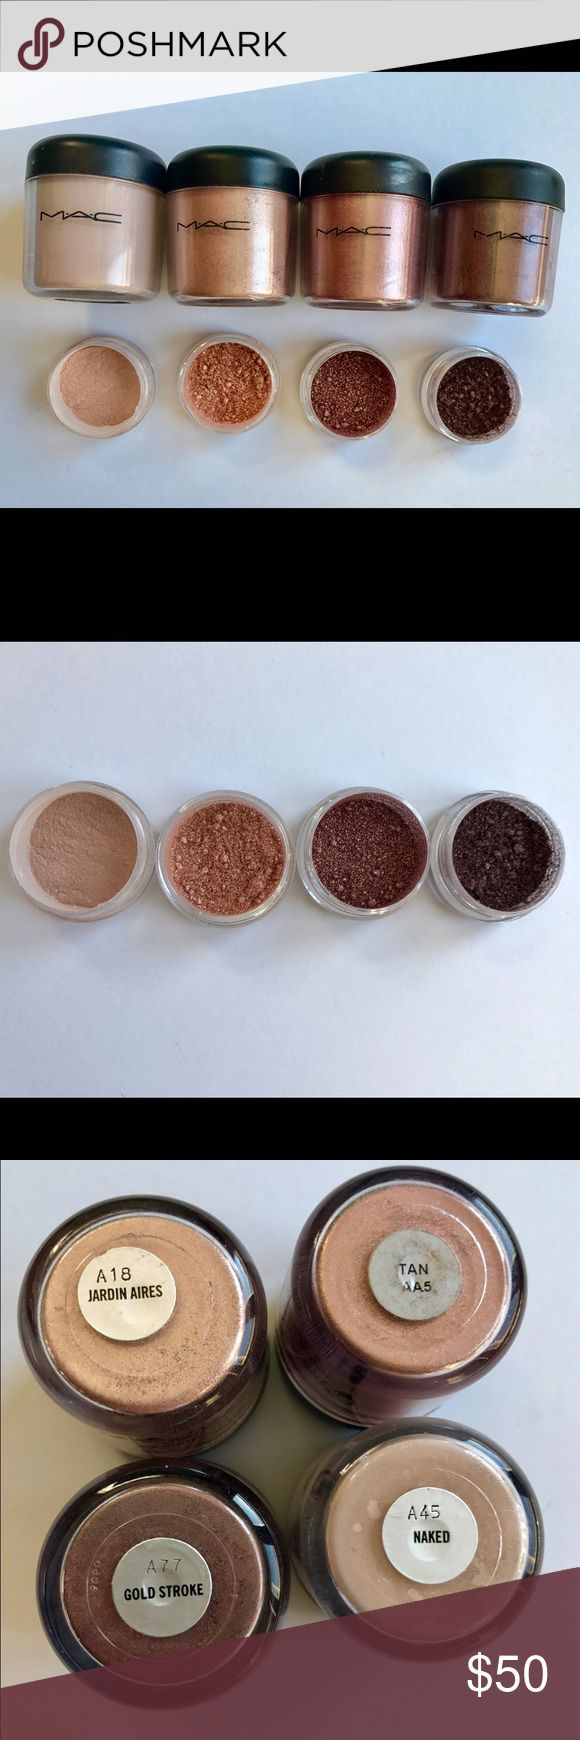 Super Rare MAC Pigment Sample Set (1/4 teaspoon) 🍂This MAC Pigment sample set includes 1/4 teaspoon of each of the following pigments: Naked, Jardin Aires, Tan, and Gold Stroke! This is a perfect way to try out Authentic MAC Pigments without spending a fortune on them. These Pigments are perfect for any occasion! Get them while they last! SHIPS THE NEXT DAY! Pigments come in 3g BPA Free jars! MAC Cosmetics Makeup Eyeshadow